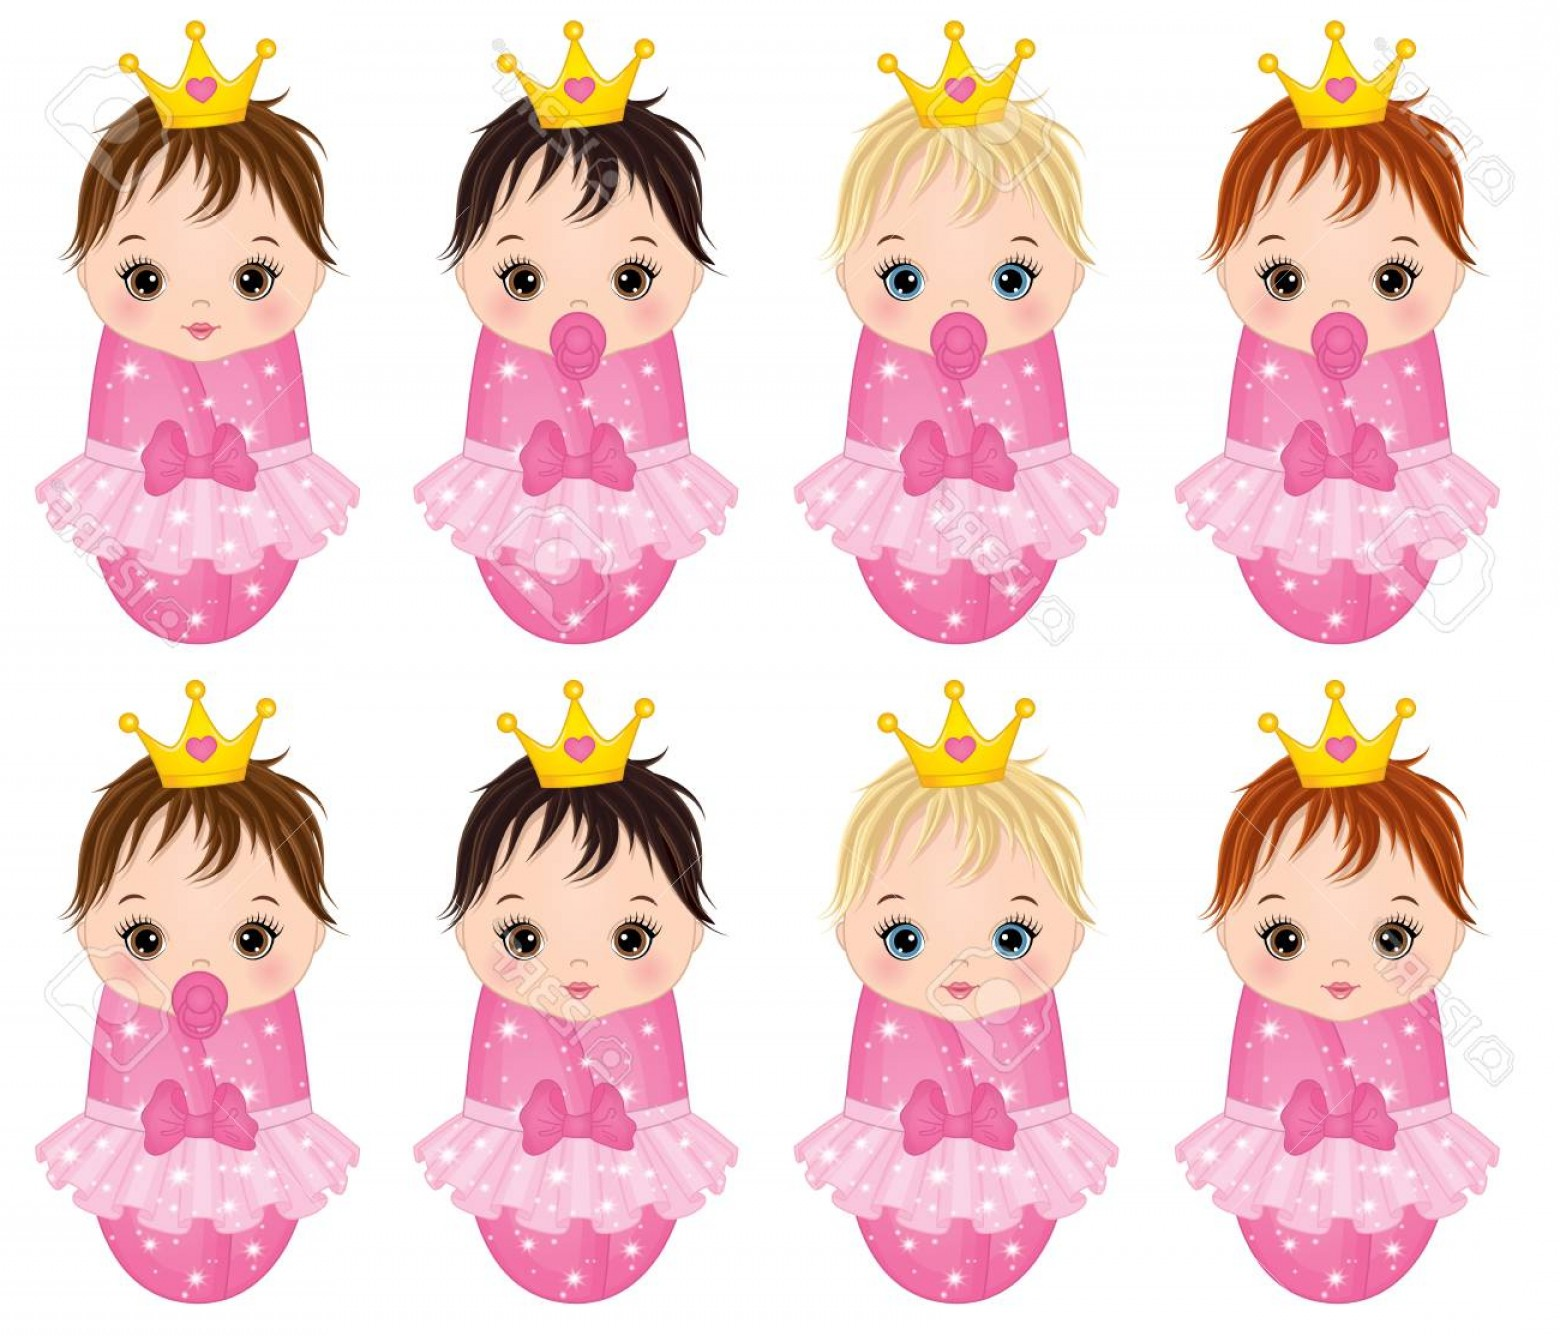 Princess Baby Girl Vector: Photostock Vector Vector Cute Baby Girls Dressed As Princesses Vector Little Princesses With Various Hair Colors